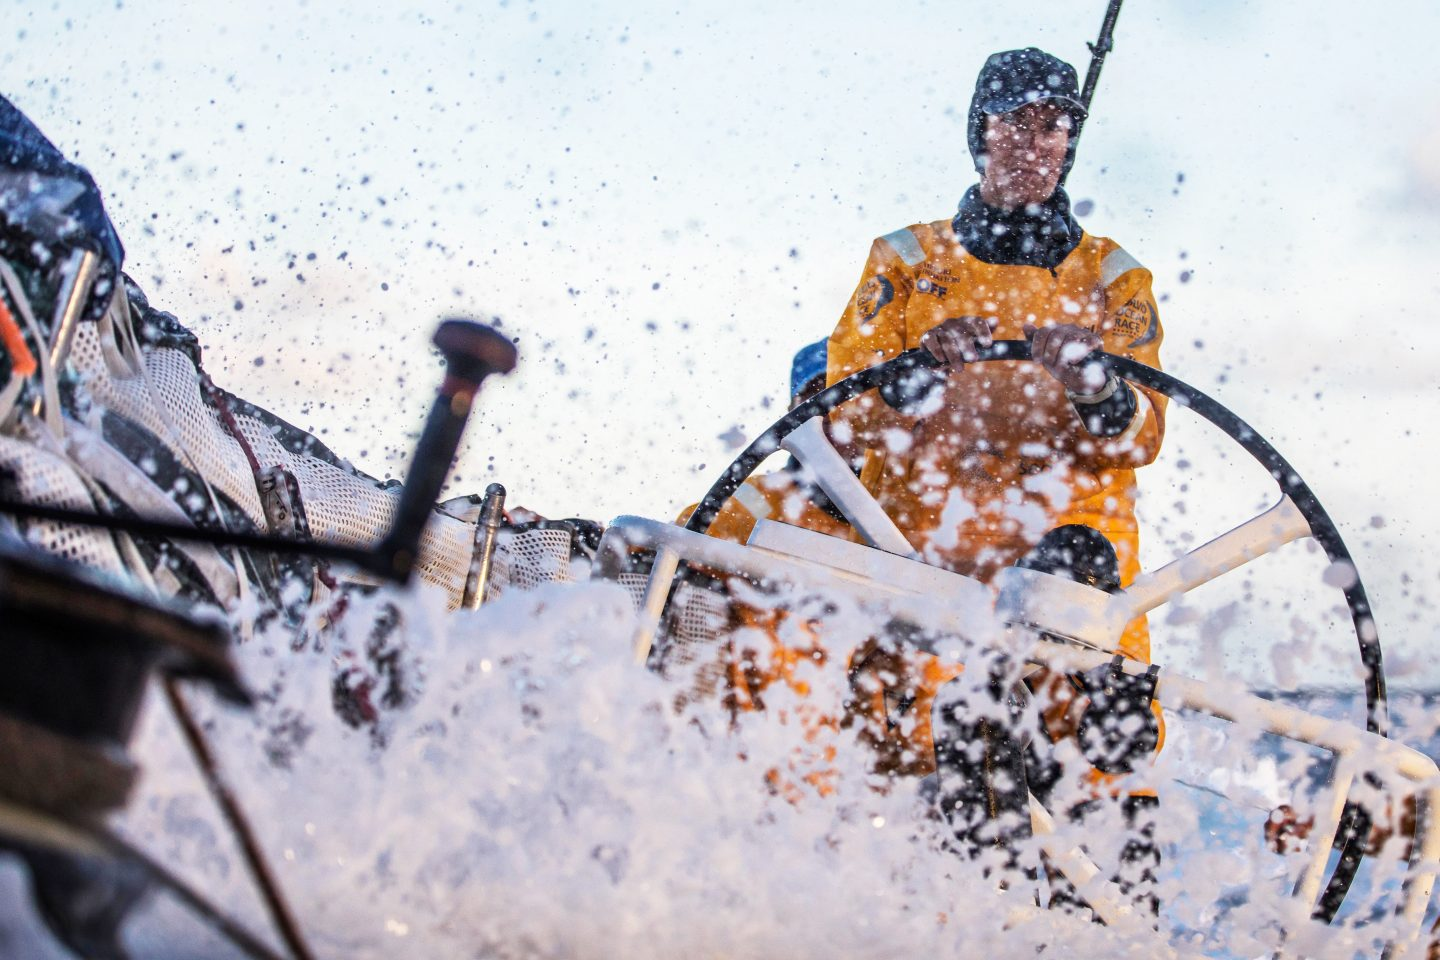 Woman in yellow outfit steering yacht with waves splashing, Dee Caffari, sailor, yachtswoman, leadership, confidence, inspirational, GamePlan A